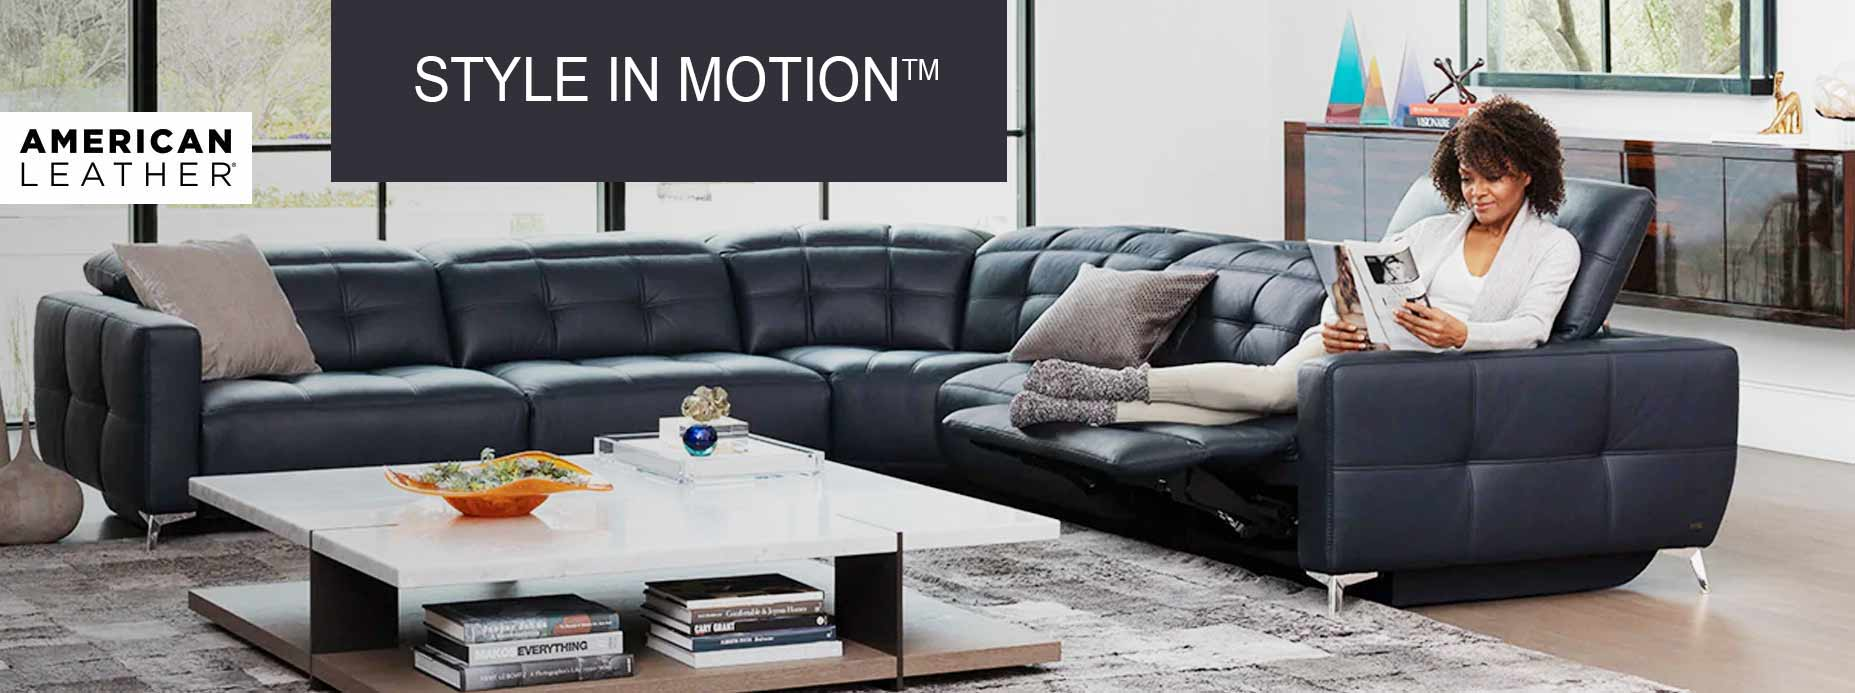 Style in Motion by American Leather